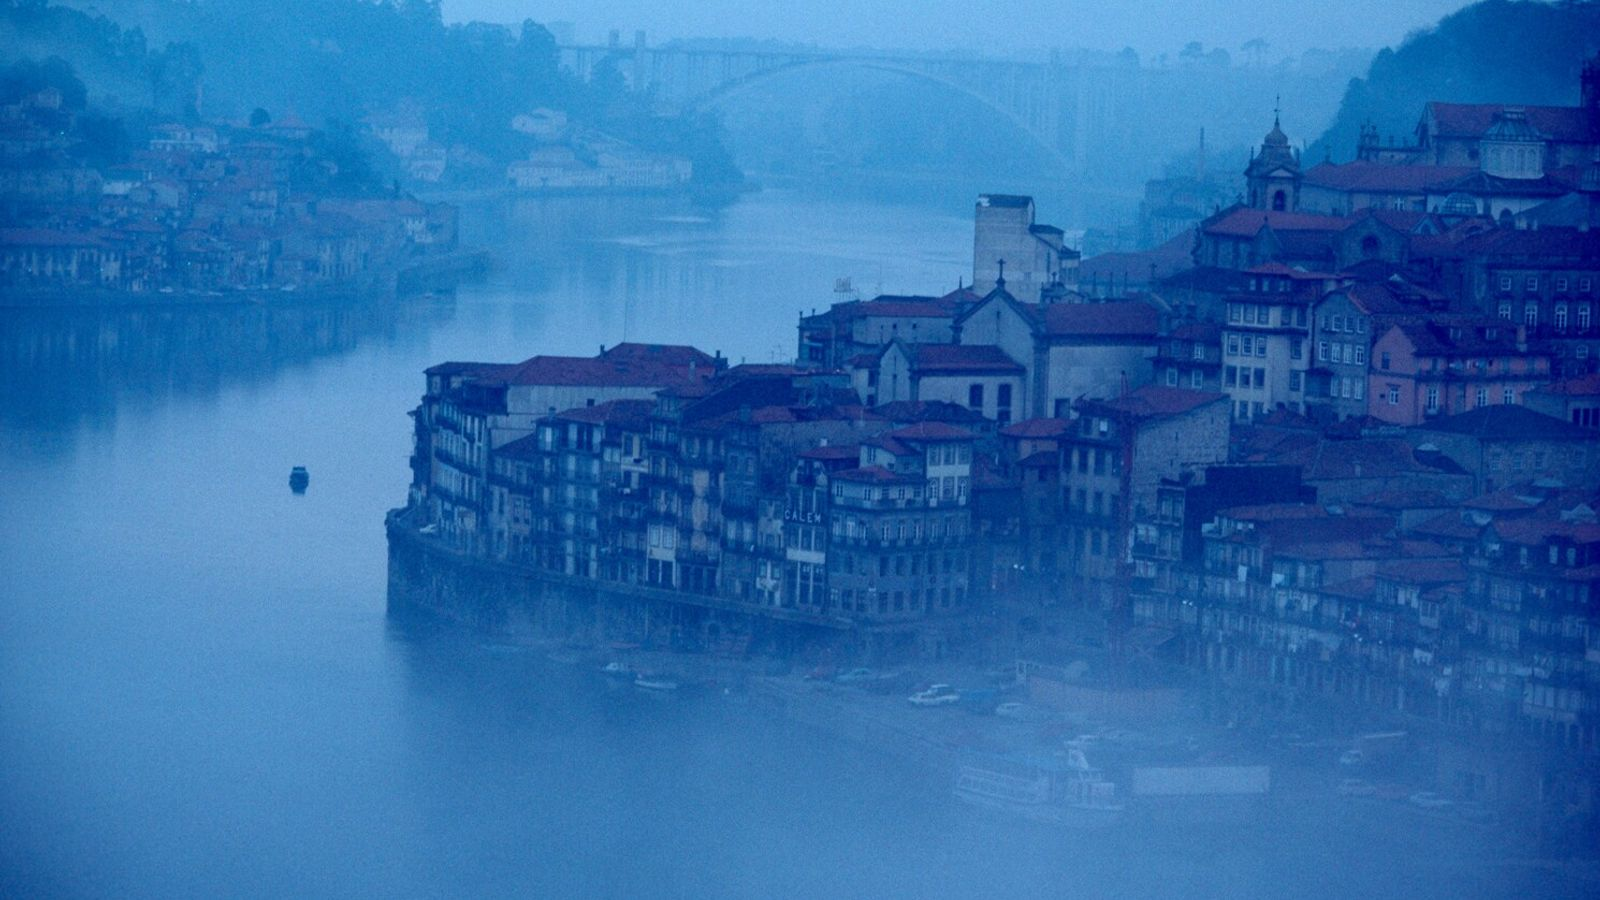 Picture of the city of Porto, Portugal, at the mouth of the Douro River